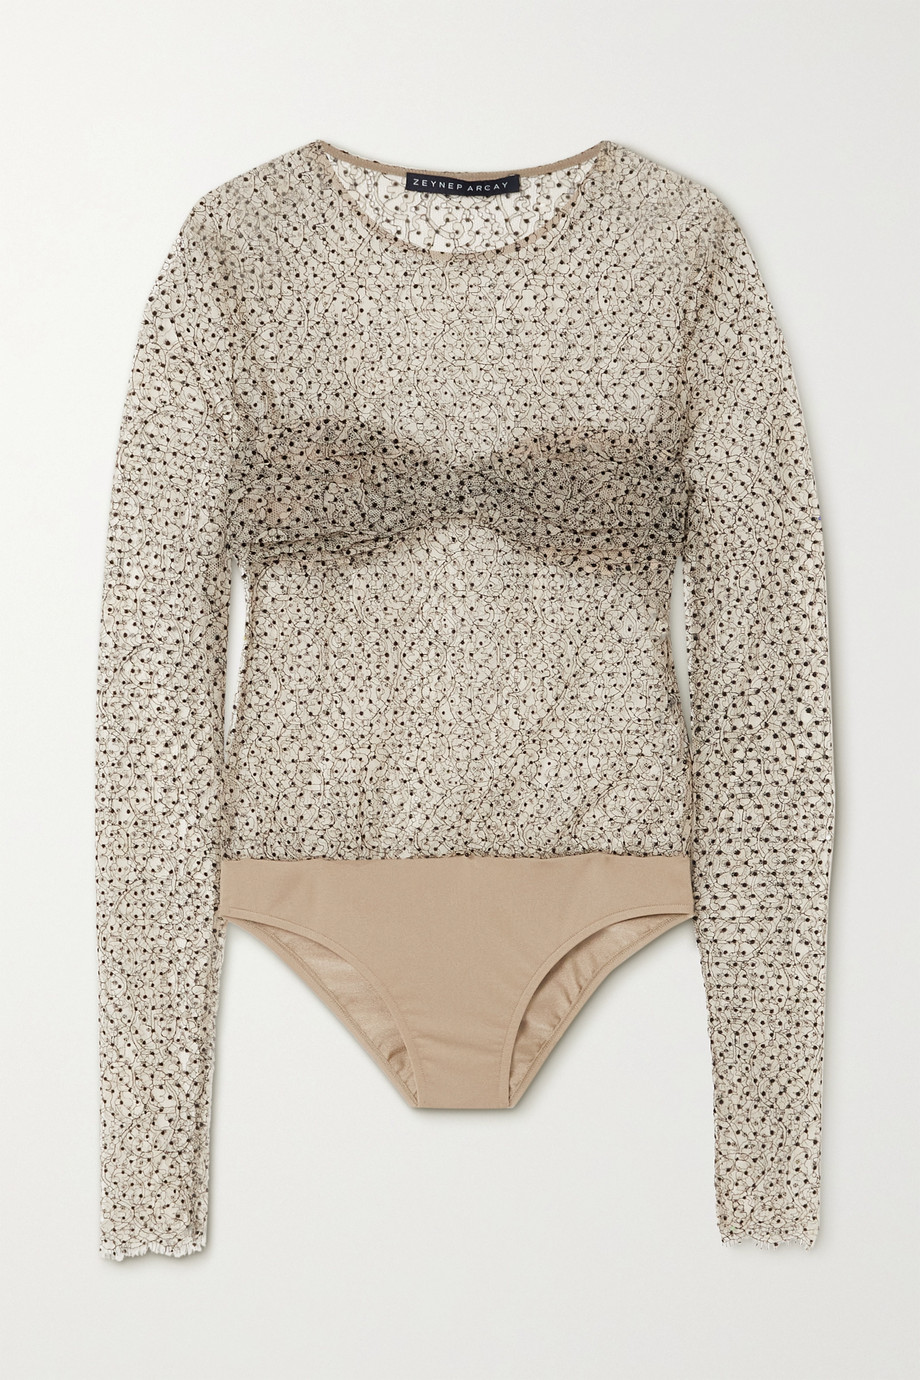 Zeynep Arçay Polka-dot flocked corded lace and jersey bodysuit